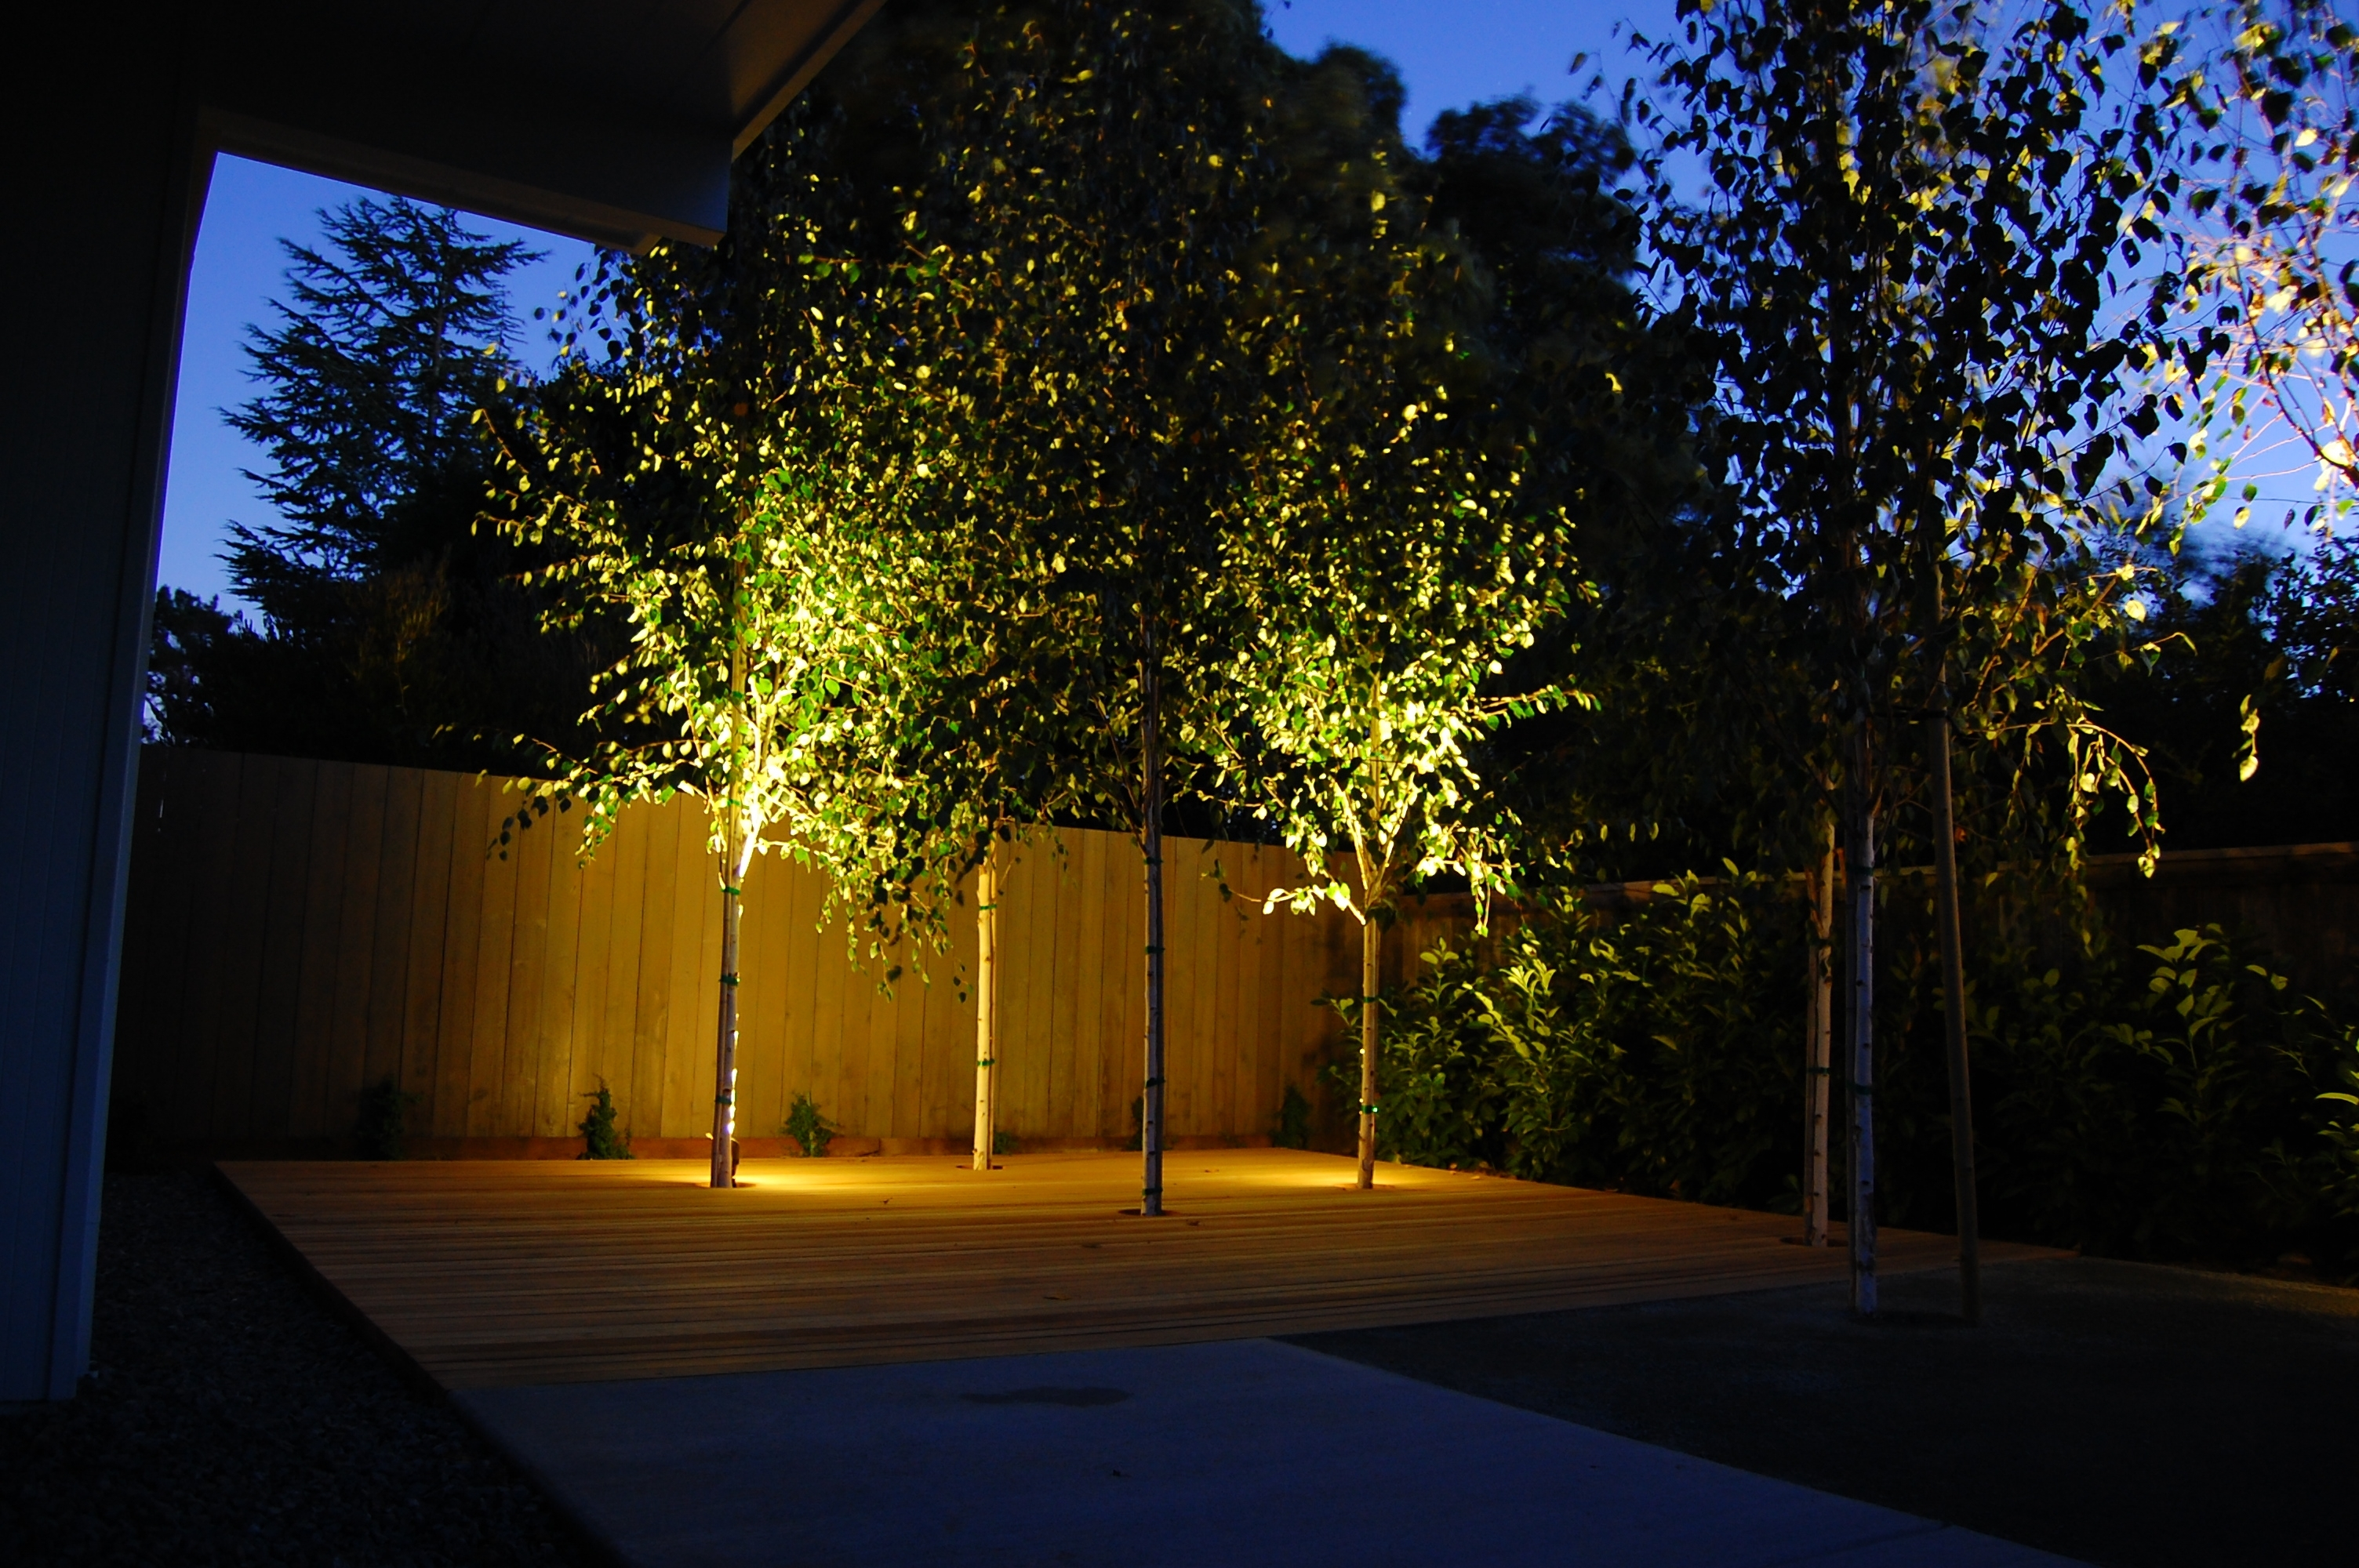 Outdoor Lights For Trees - Outdoor Lighting Ideas inside Outdoor Lanterns for Trees (Image 18 of 20)